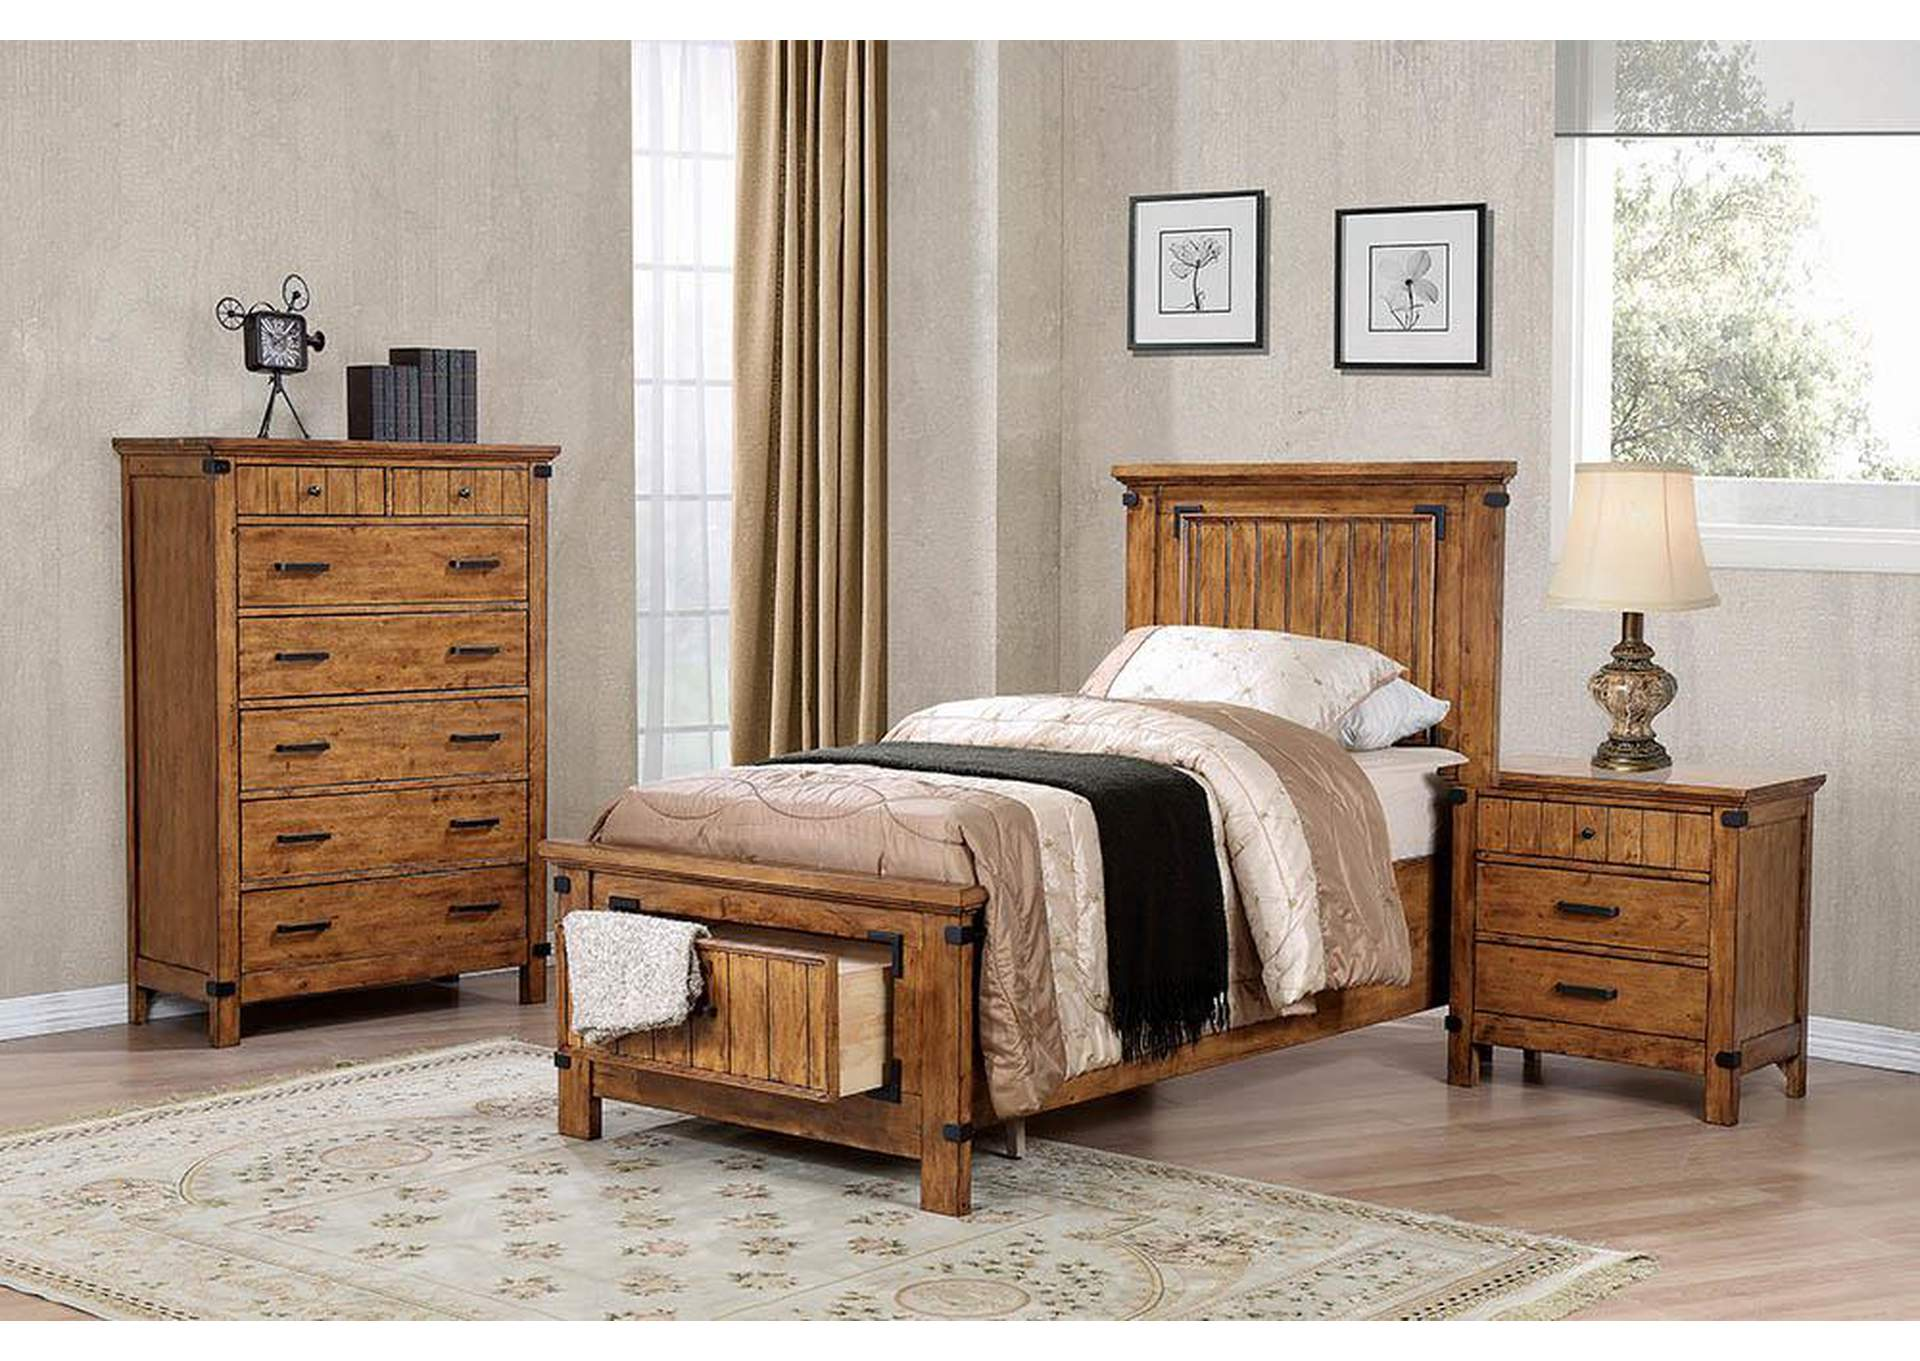 Rustic Honey Brenner Rustic Honey Twin Bed,Coaster Furniture